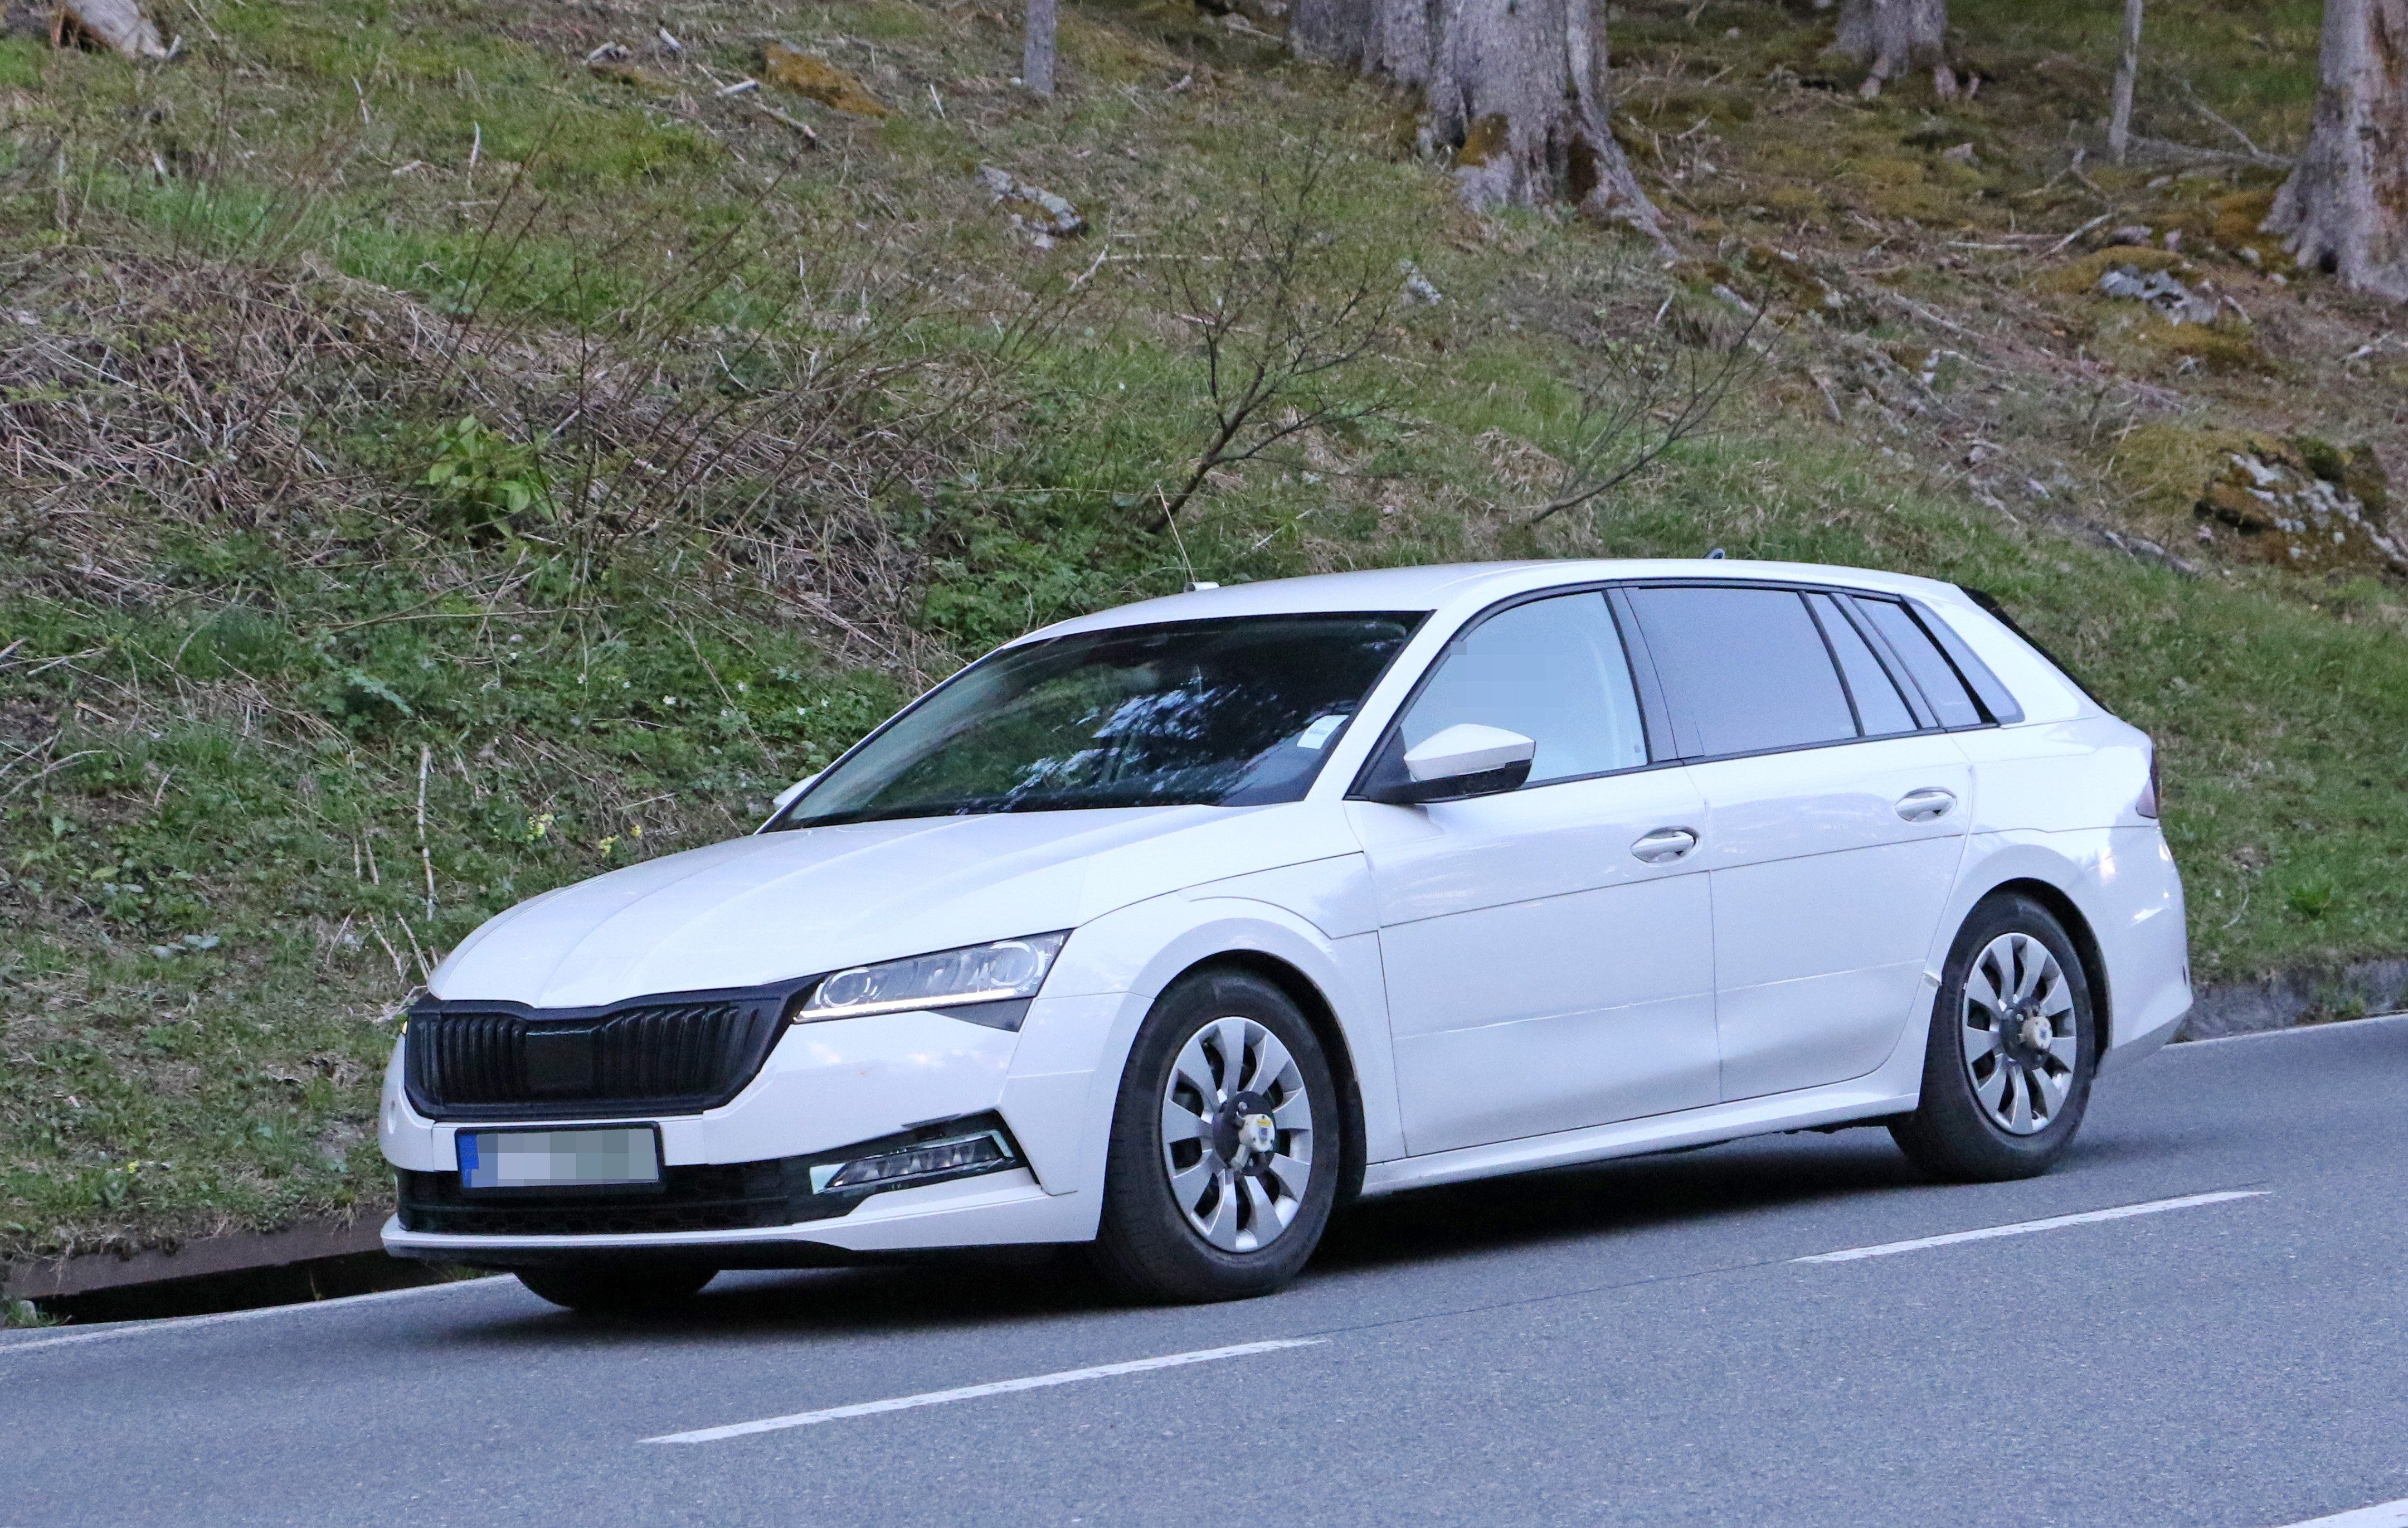 2021 Skoda Roomster Exterior and Interior